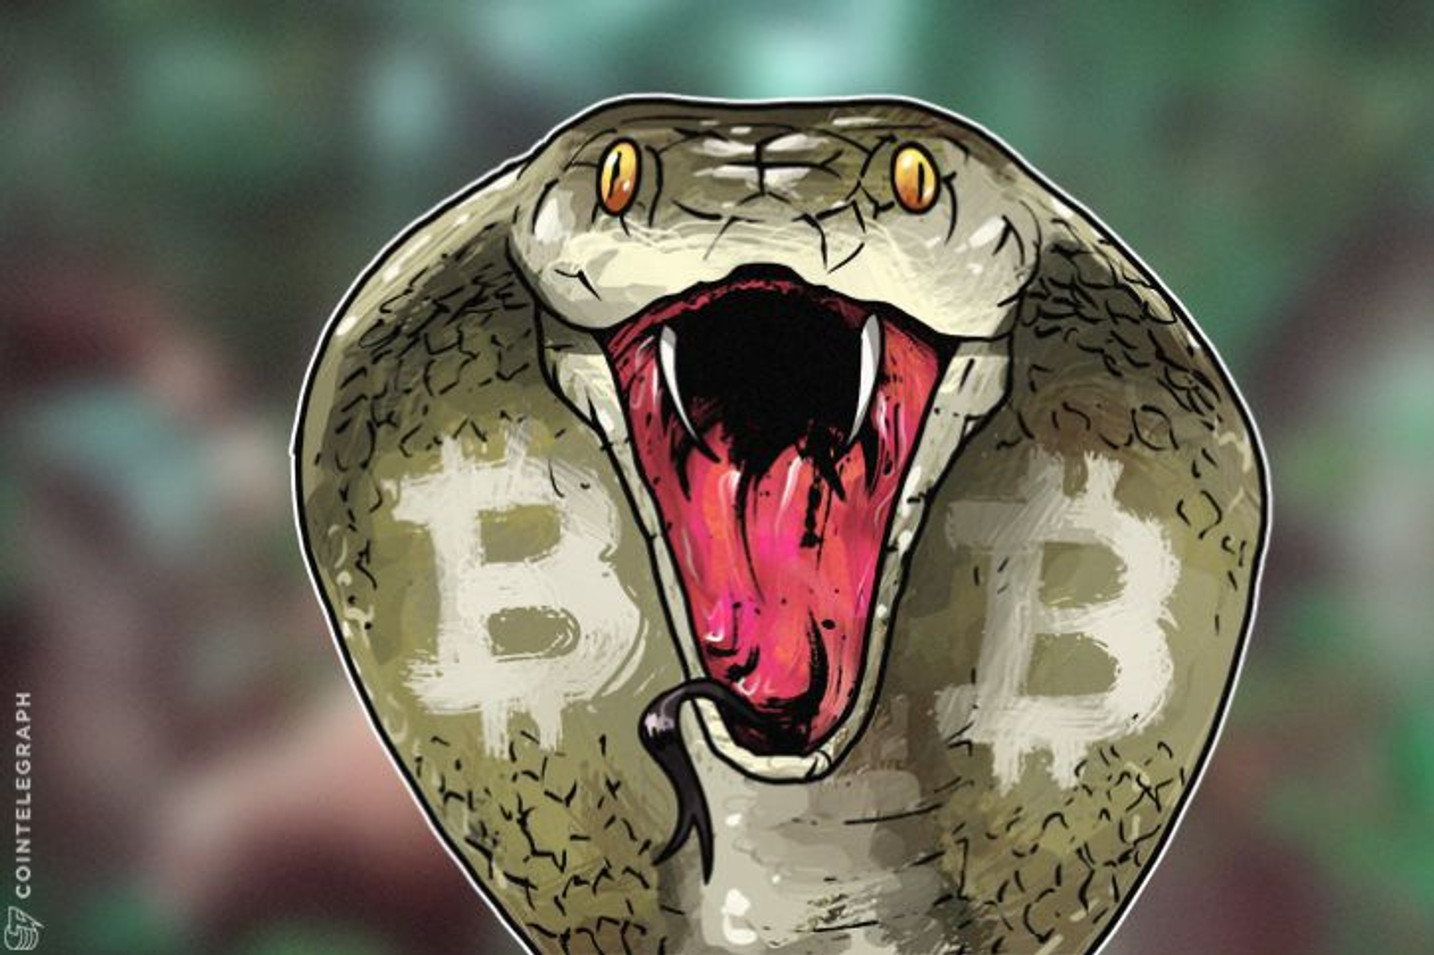 India: Bitcoin Prices Drop As Media Misinterprets Govt's Regulation Speech